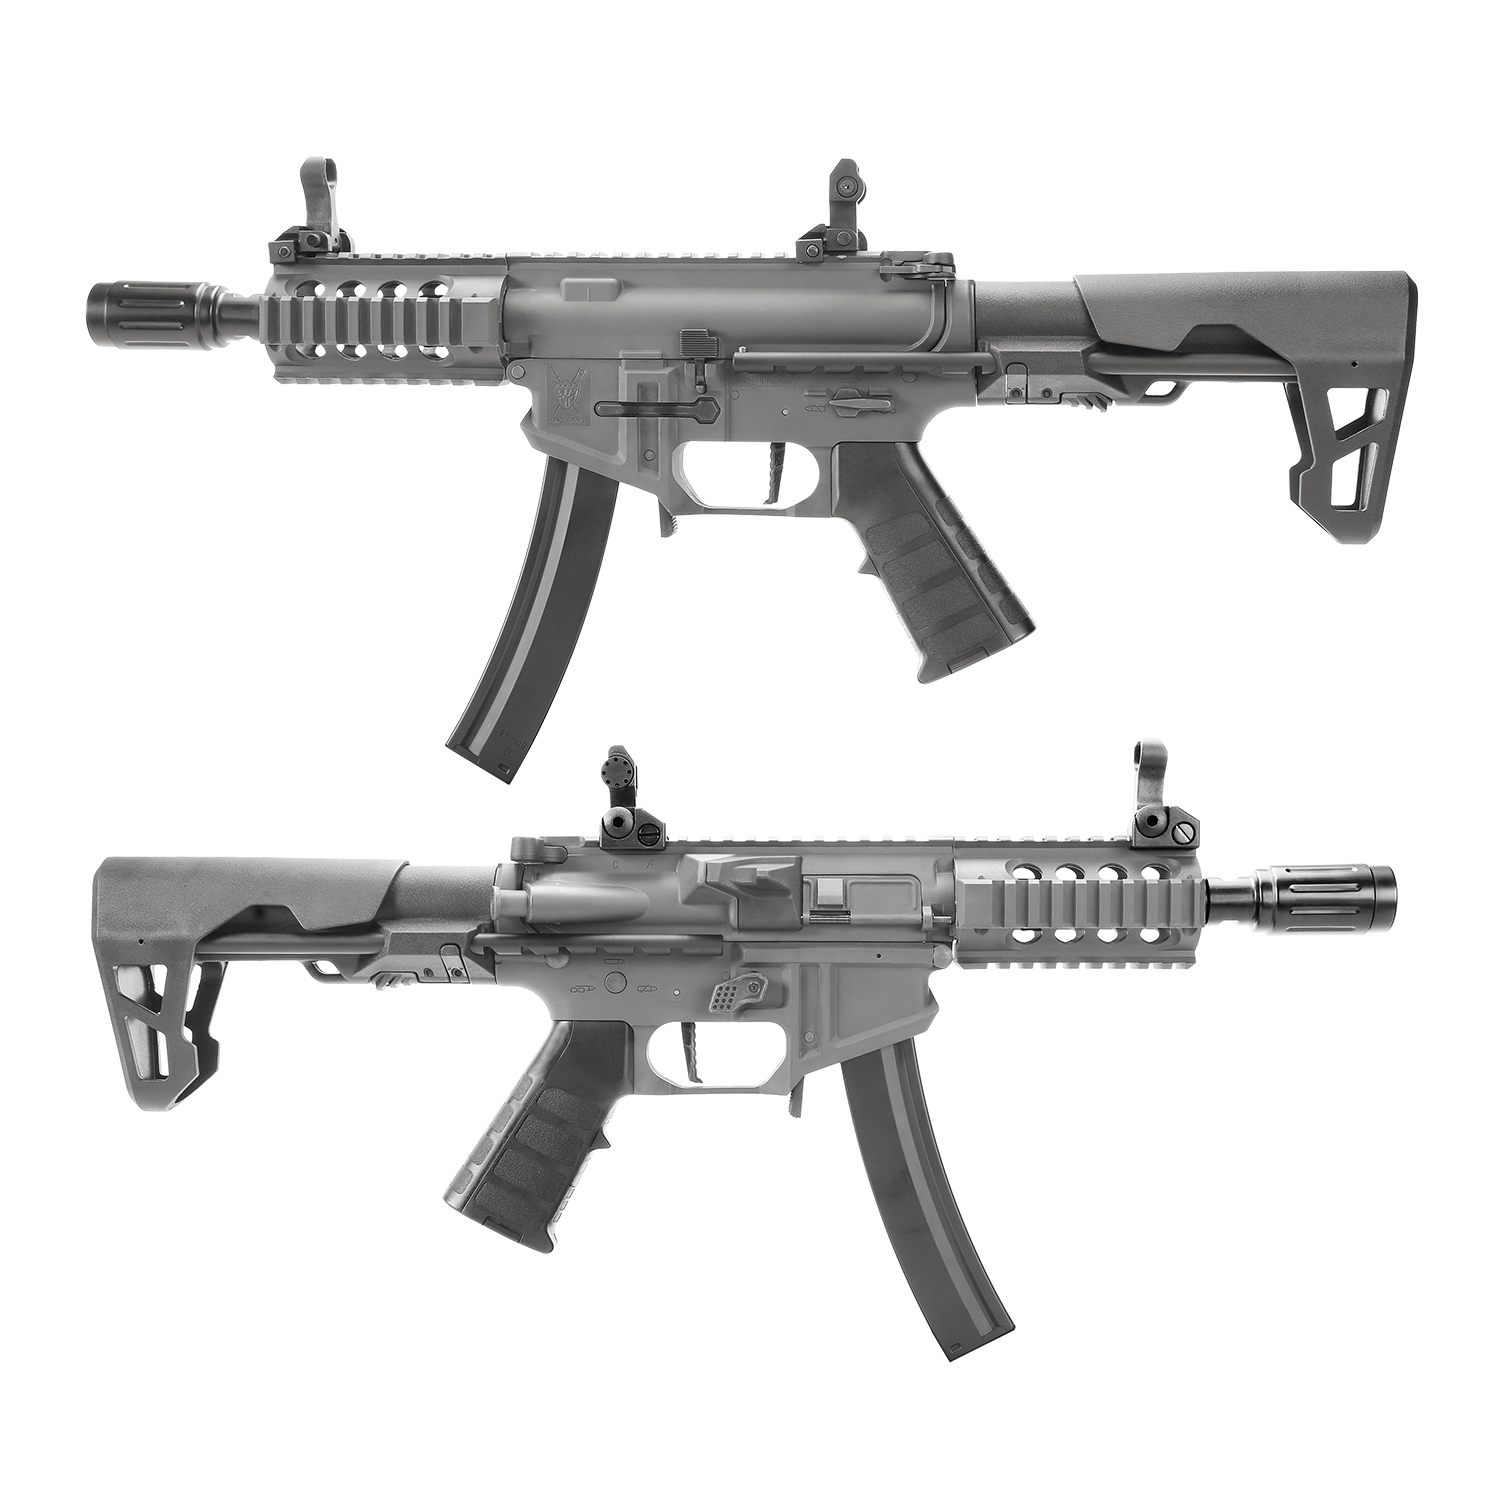 King Arms PDW 9mm SBR Shorty AEG w/ Mosfet - Grey (Polymer)